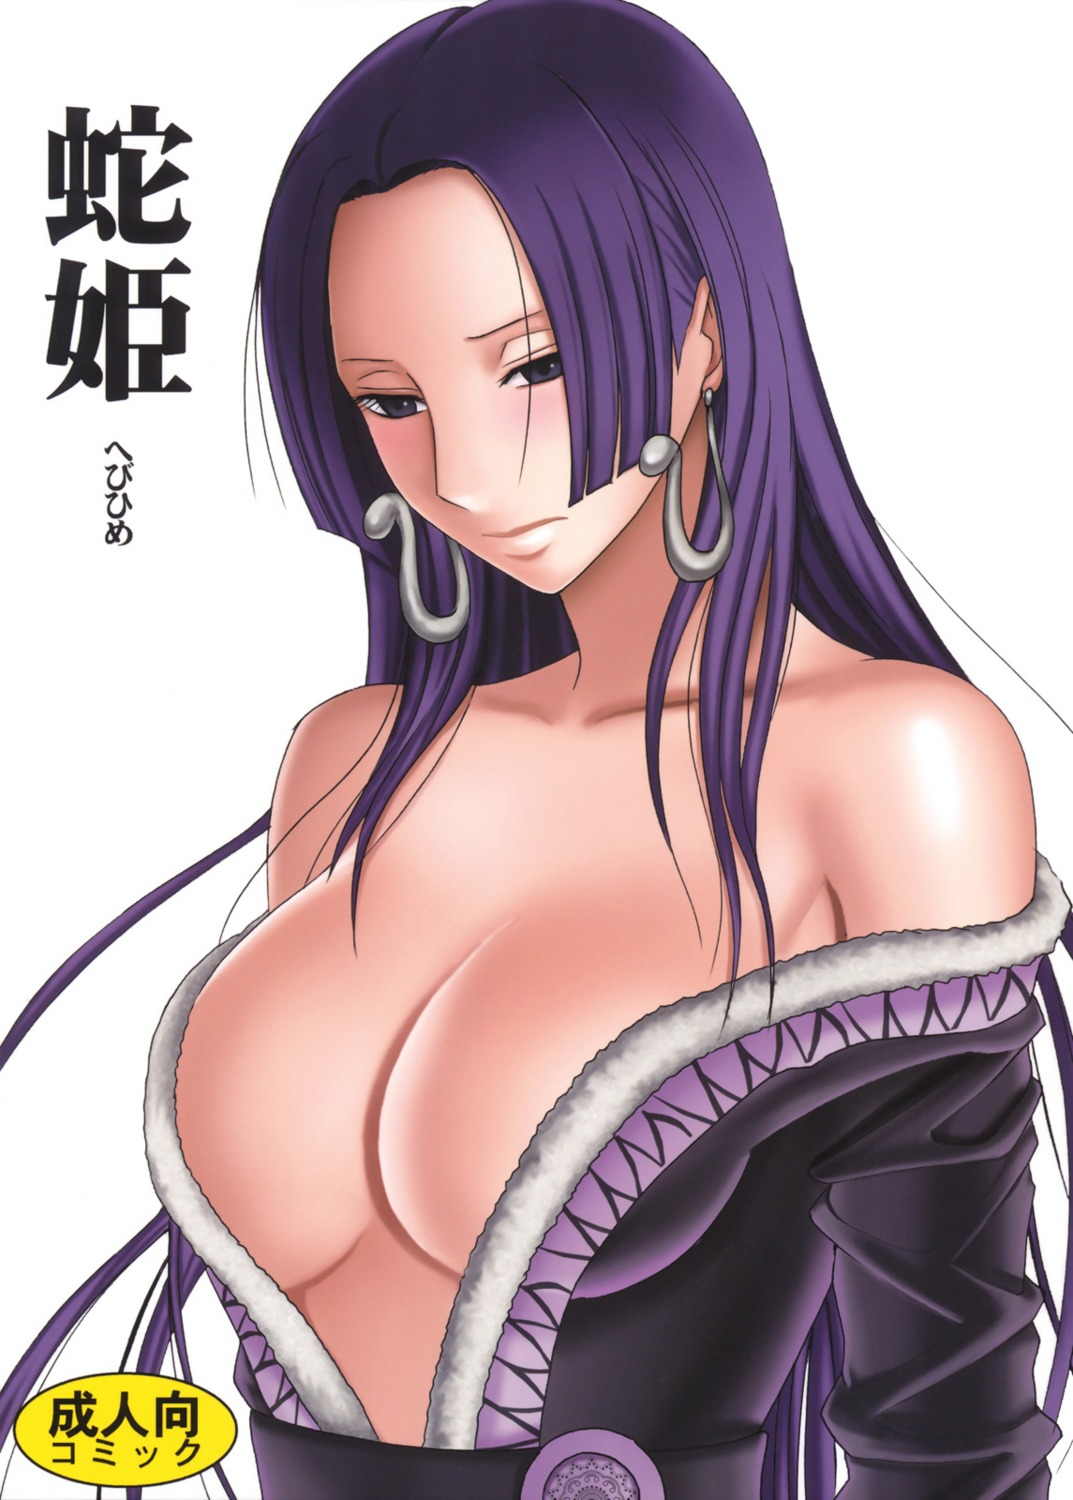 boa_hancock carmine cleavage crimson_comics no_bra one_piece